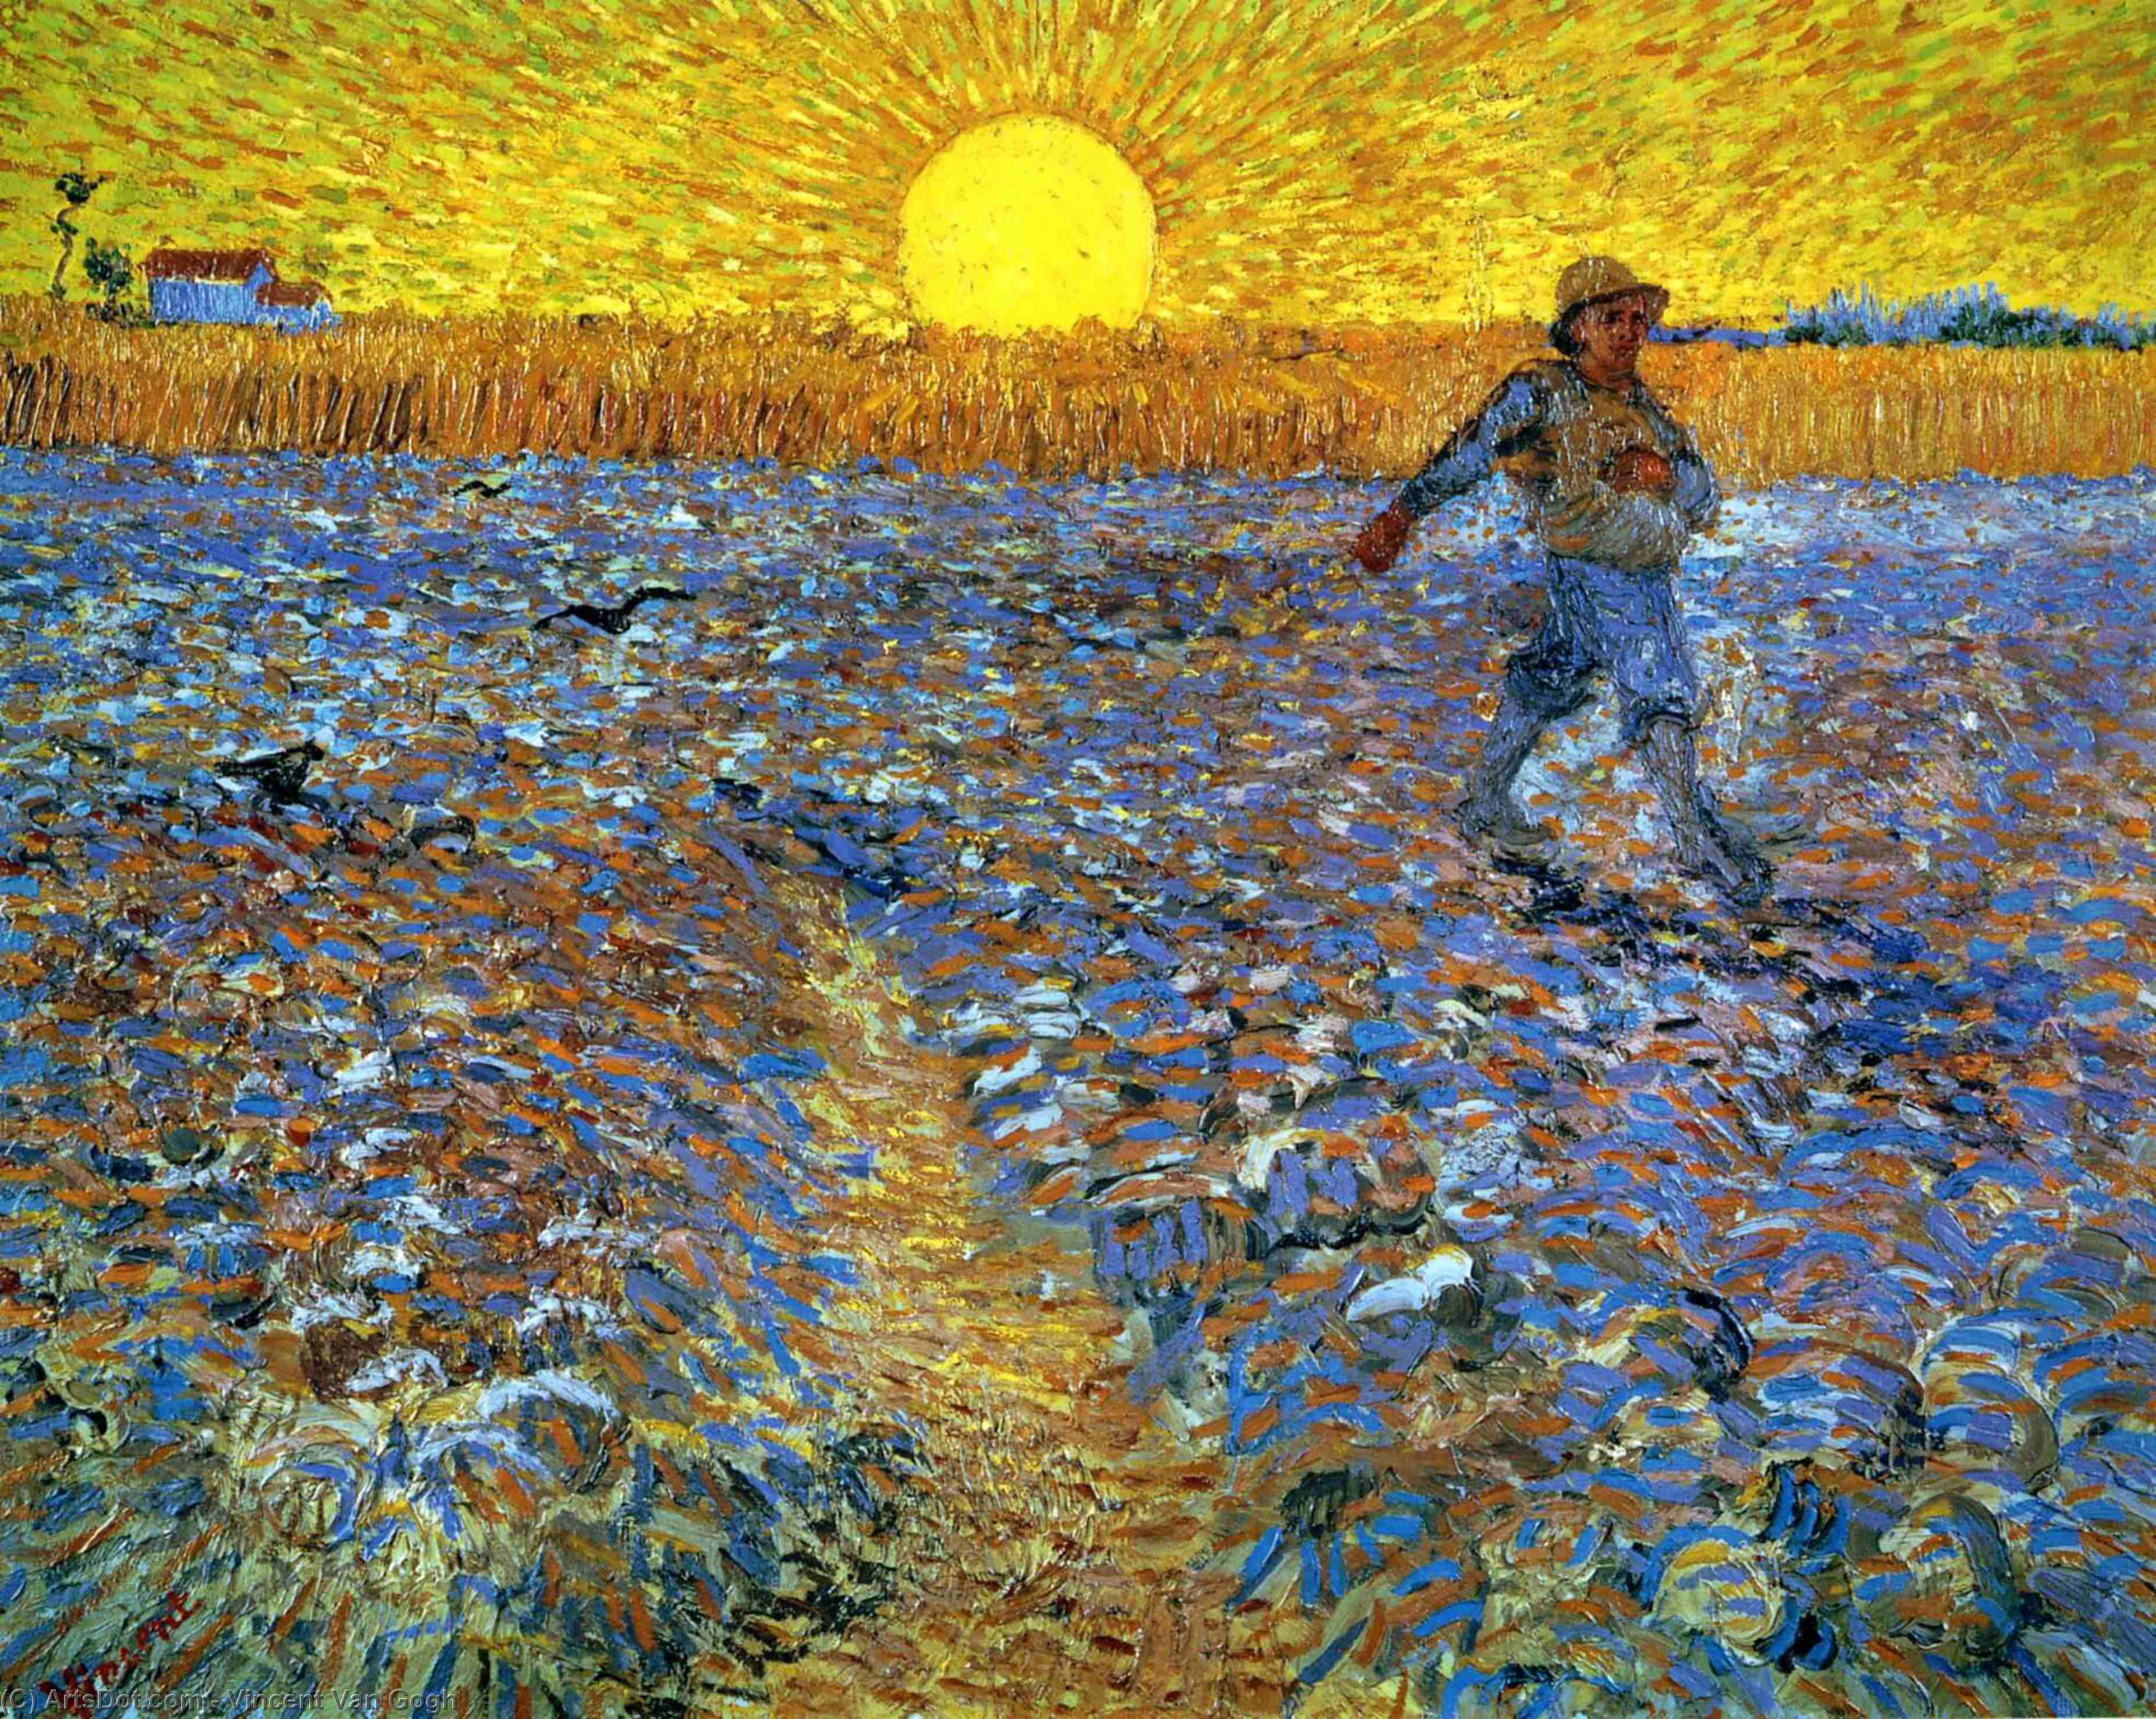 Wikioo.org - The Encyclopedia of Fine Arts - Painting, Artwork by Vincent Van Gogh - The Sower (Sower with Setting Sun)